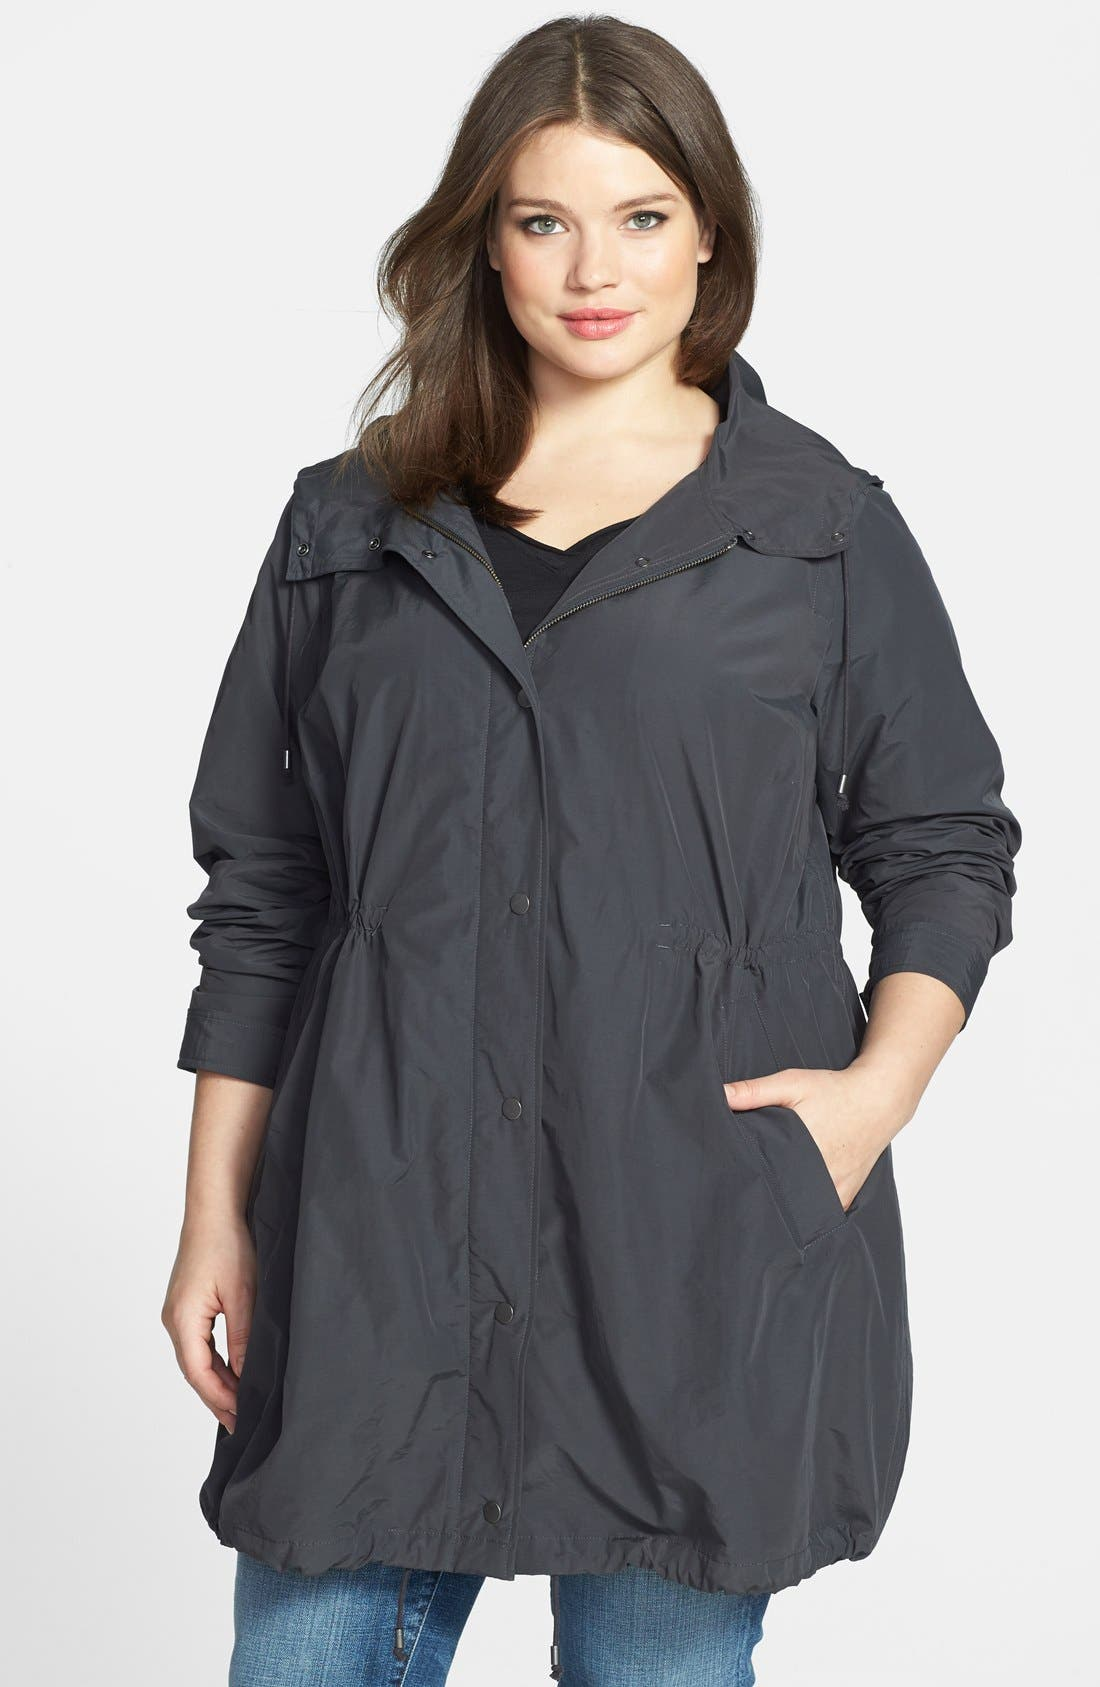 Alternate Image 1 Selected - Eileen Fisher Hooded Jacket (Plus Size)